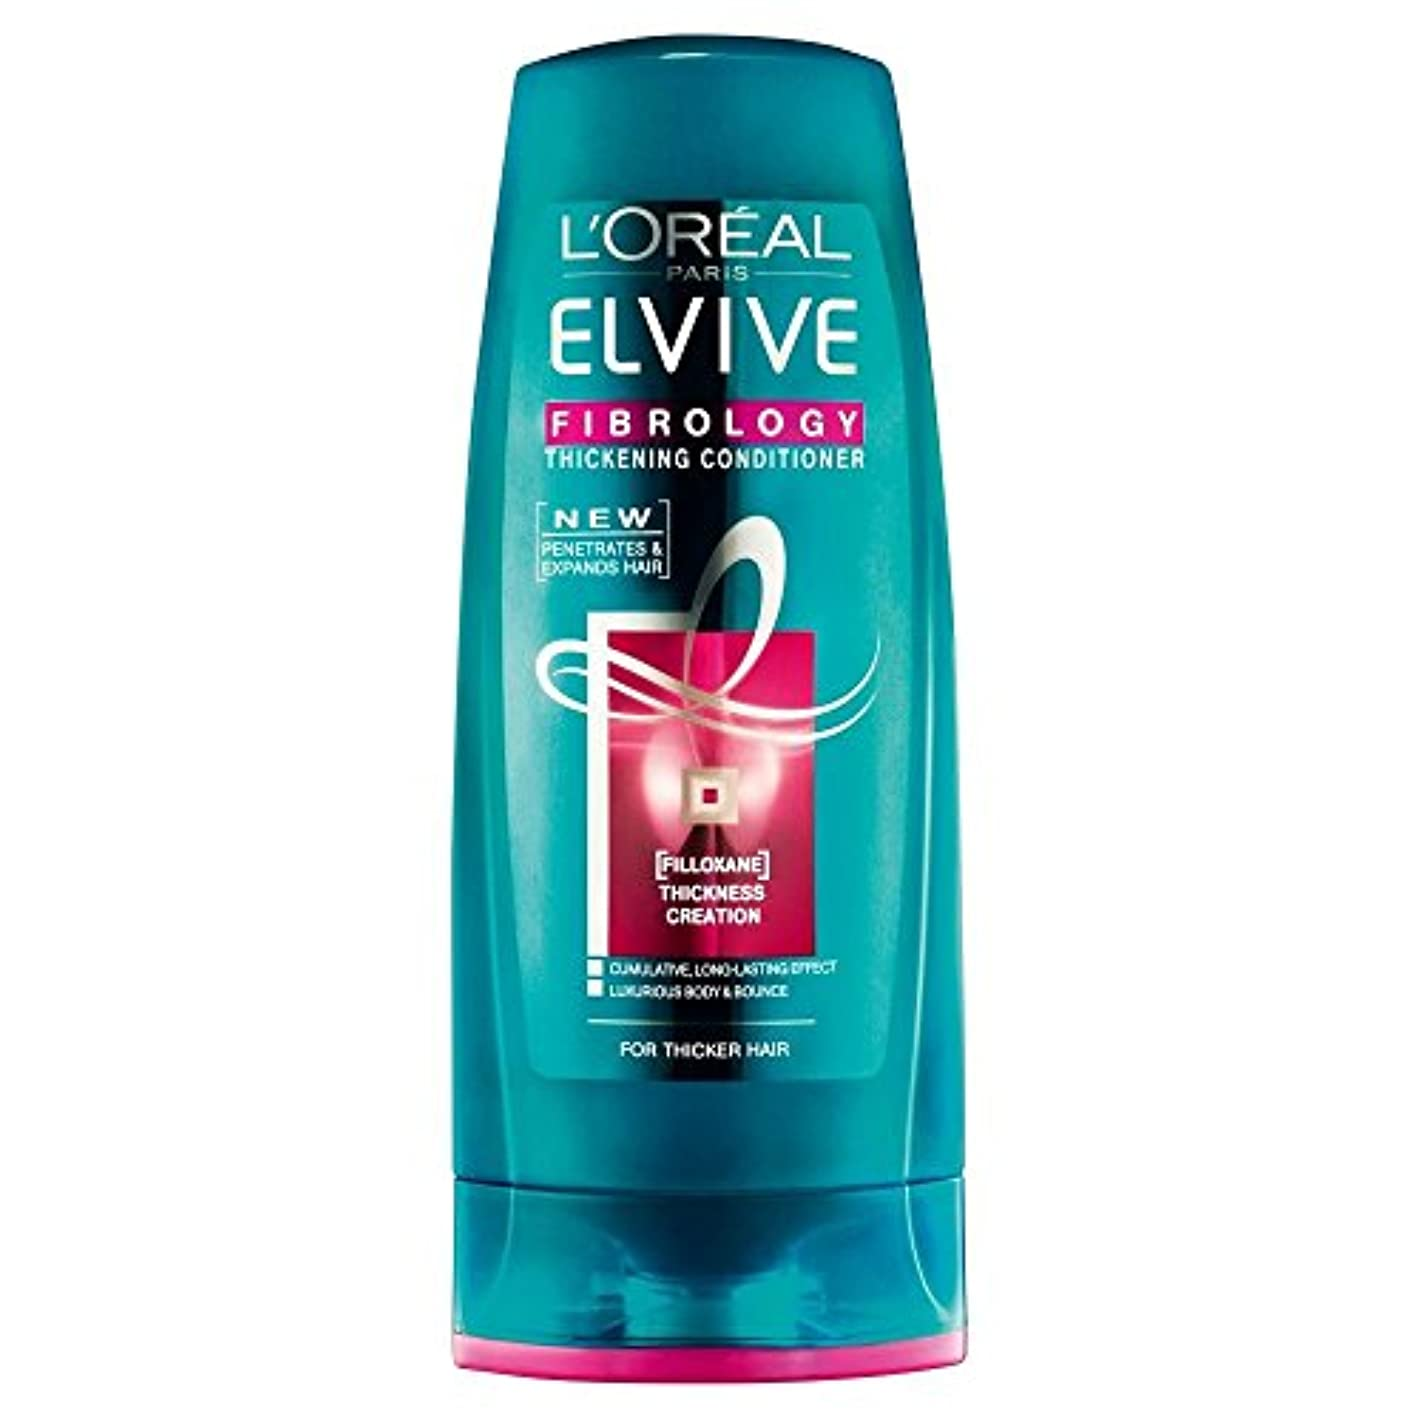 槍苗正統派L'Oreal Paris Elvive Fibrology Thickening Conditioner (400ml) L'オラ?アルパリelviveのfibrology増粘コンディショナー( 400ミリリットル)...